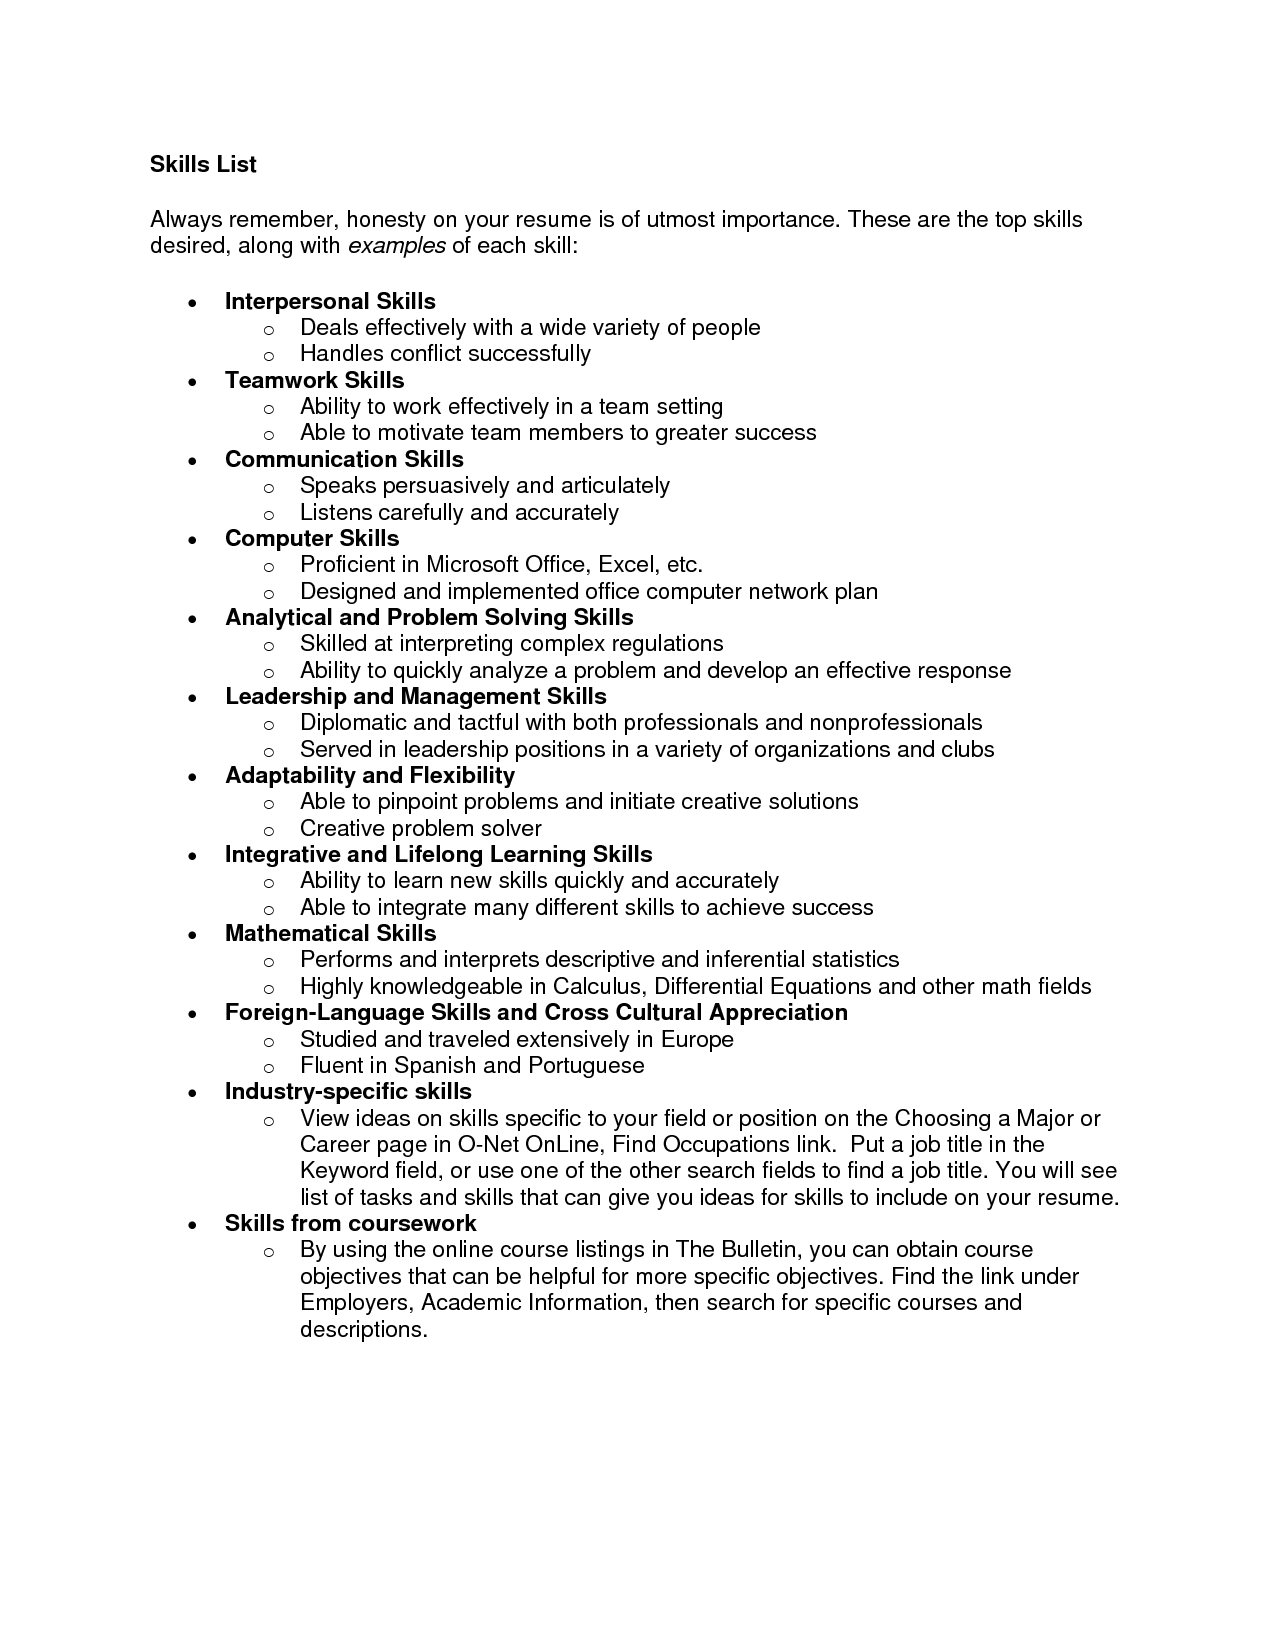 qualifications for resume list